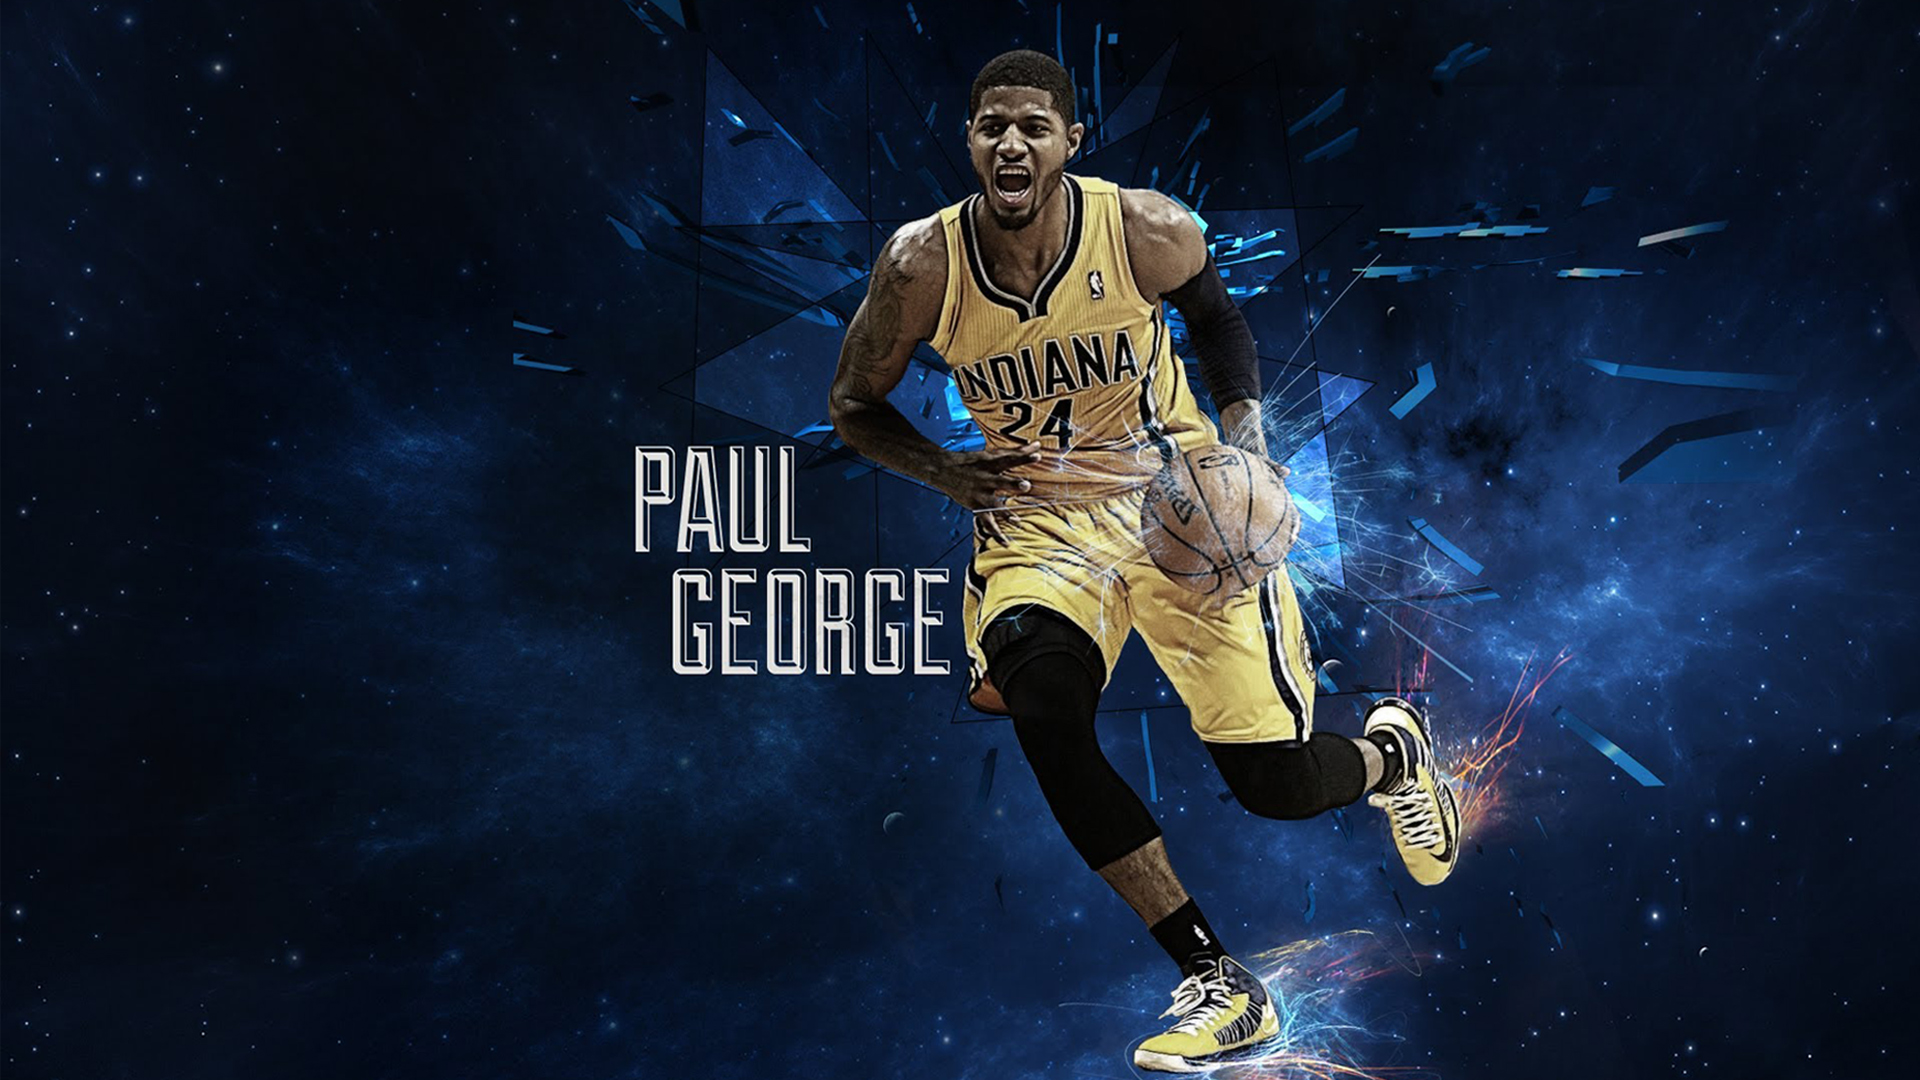 NBA Player Wallpaper